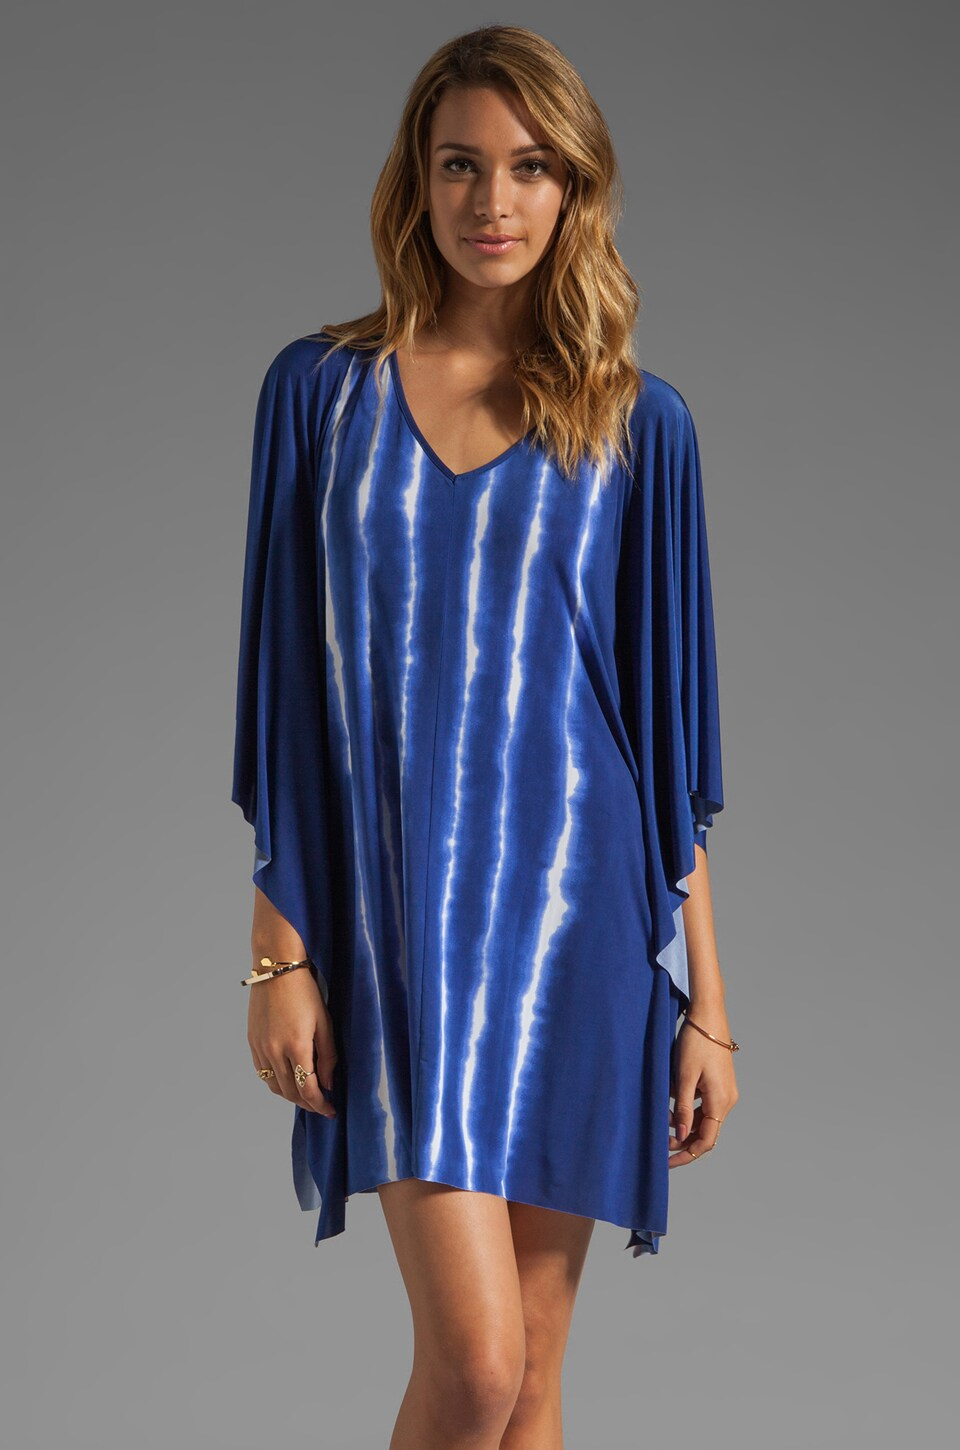 Vix Swimwear Cayman V Caftan in Blue